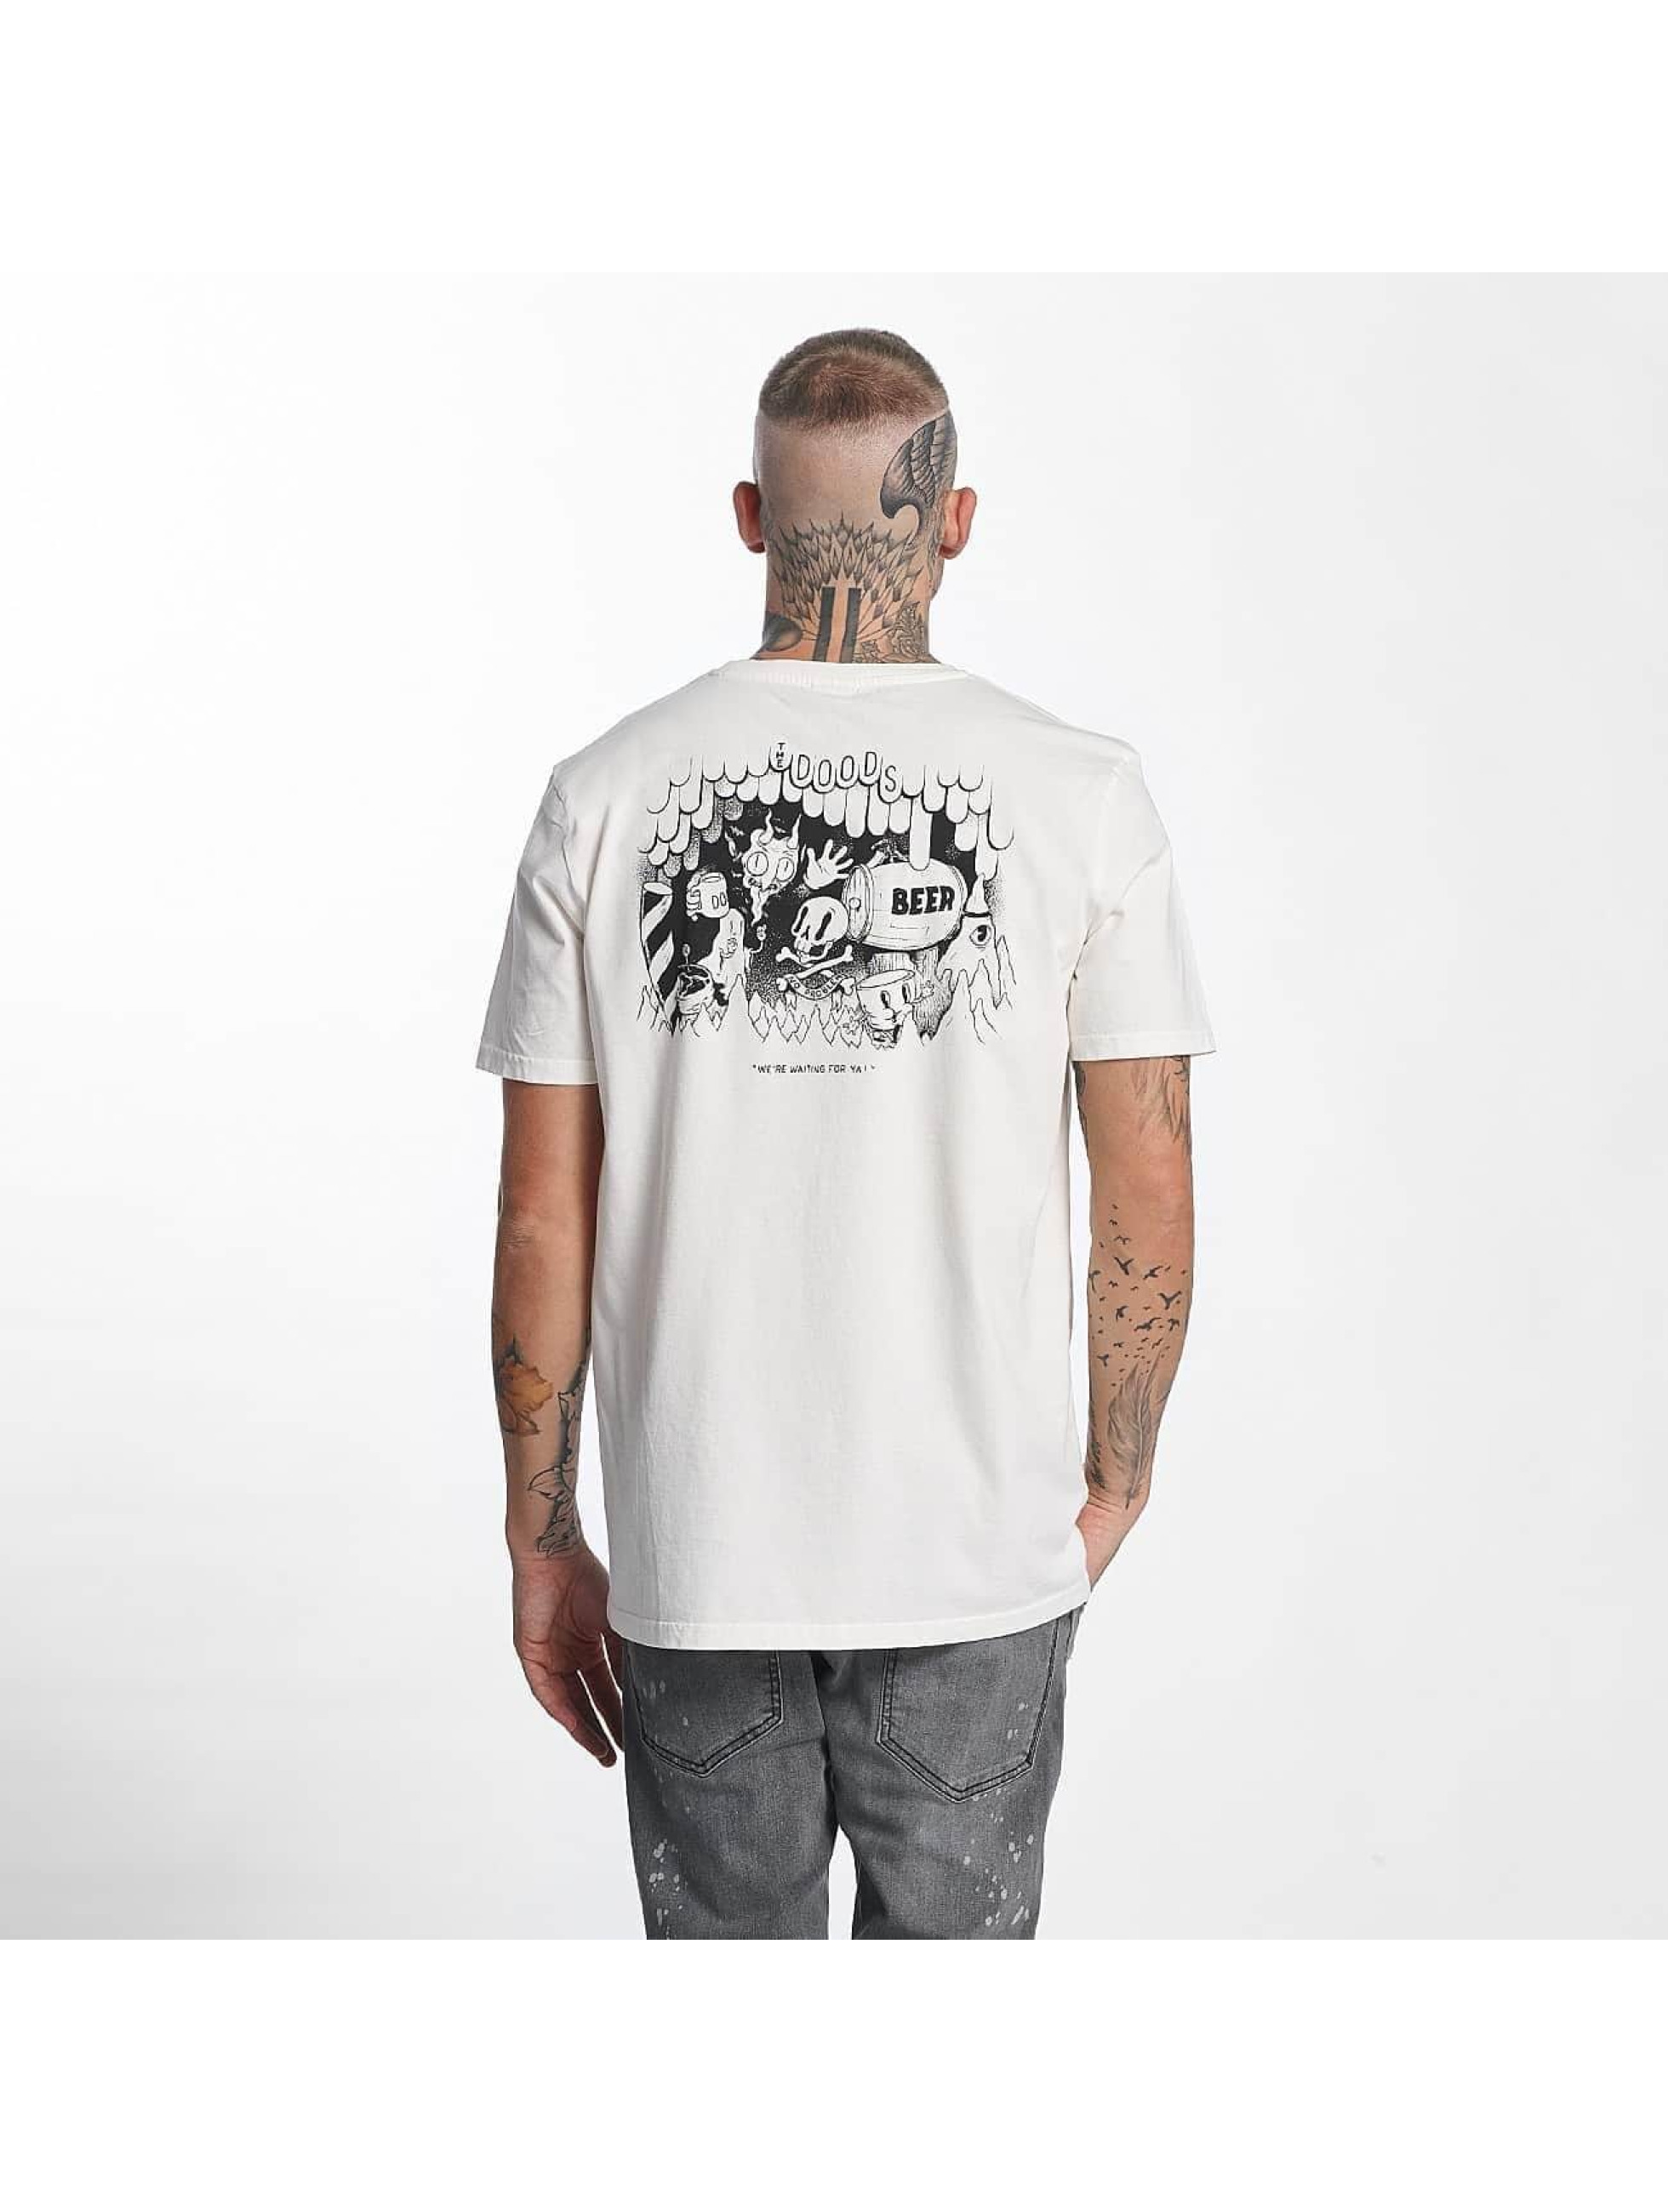 The Dudes T-Shirt Helles white